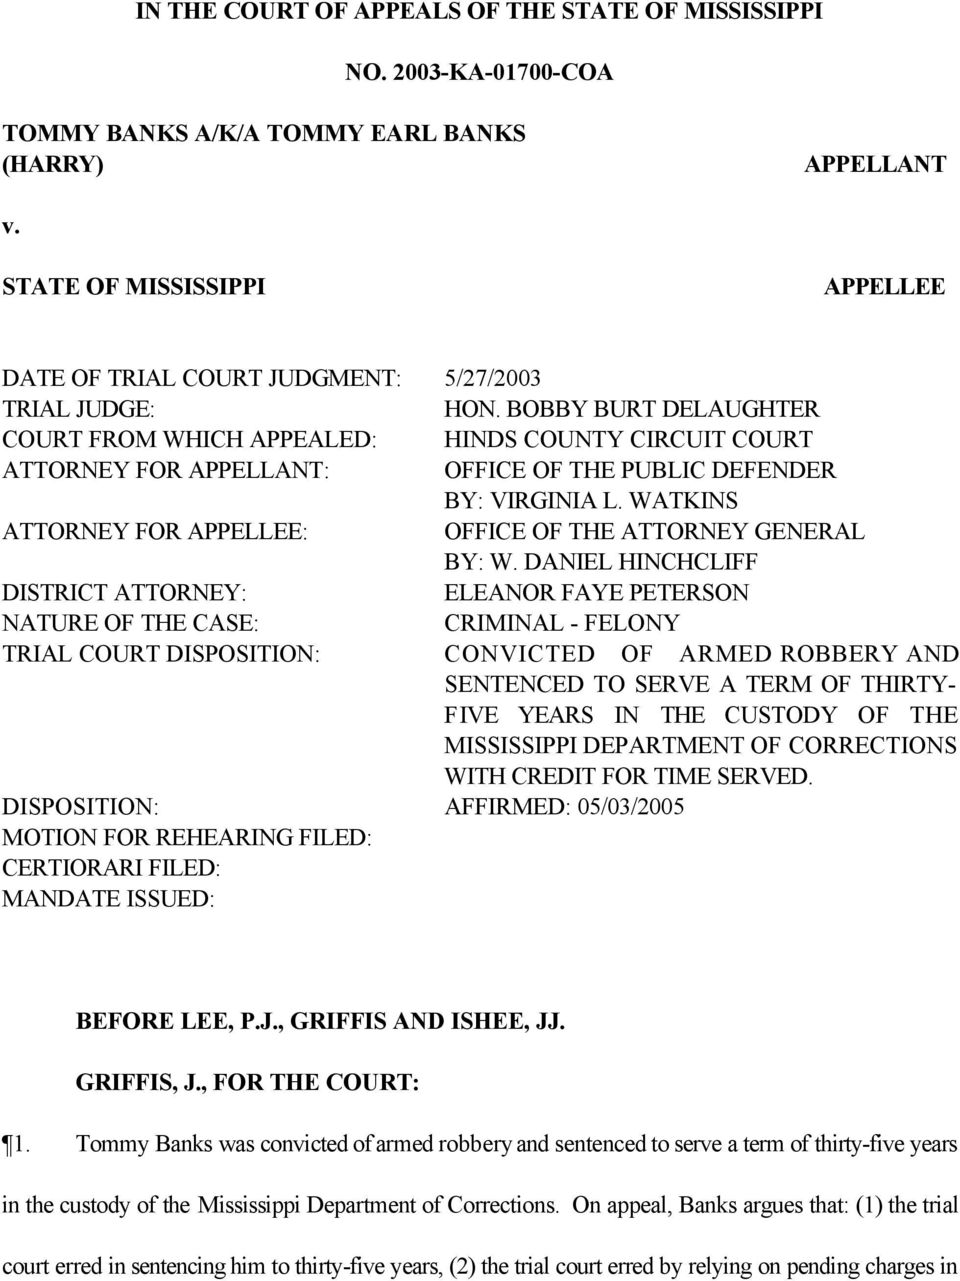 BOBBY BURT DELAUGHTER COURT FROM WHICH APPEALED: HINDS COUNTY CIRCUIT COURT ATTORNEY FOR APPELLANT: OFFICE OF THE PUBLIC DEFENDER BY: VIRGINIA L.